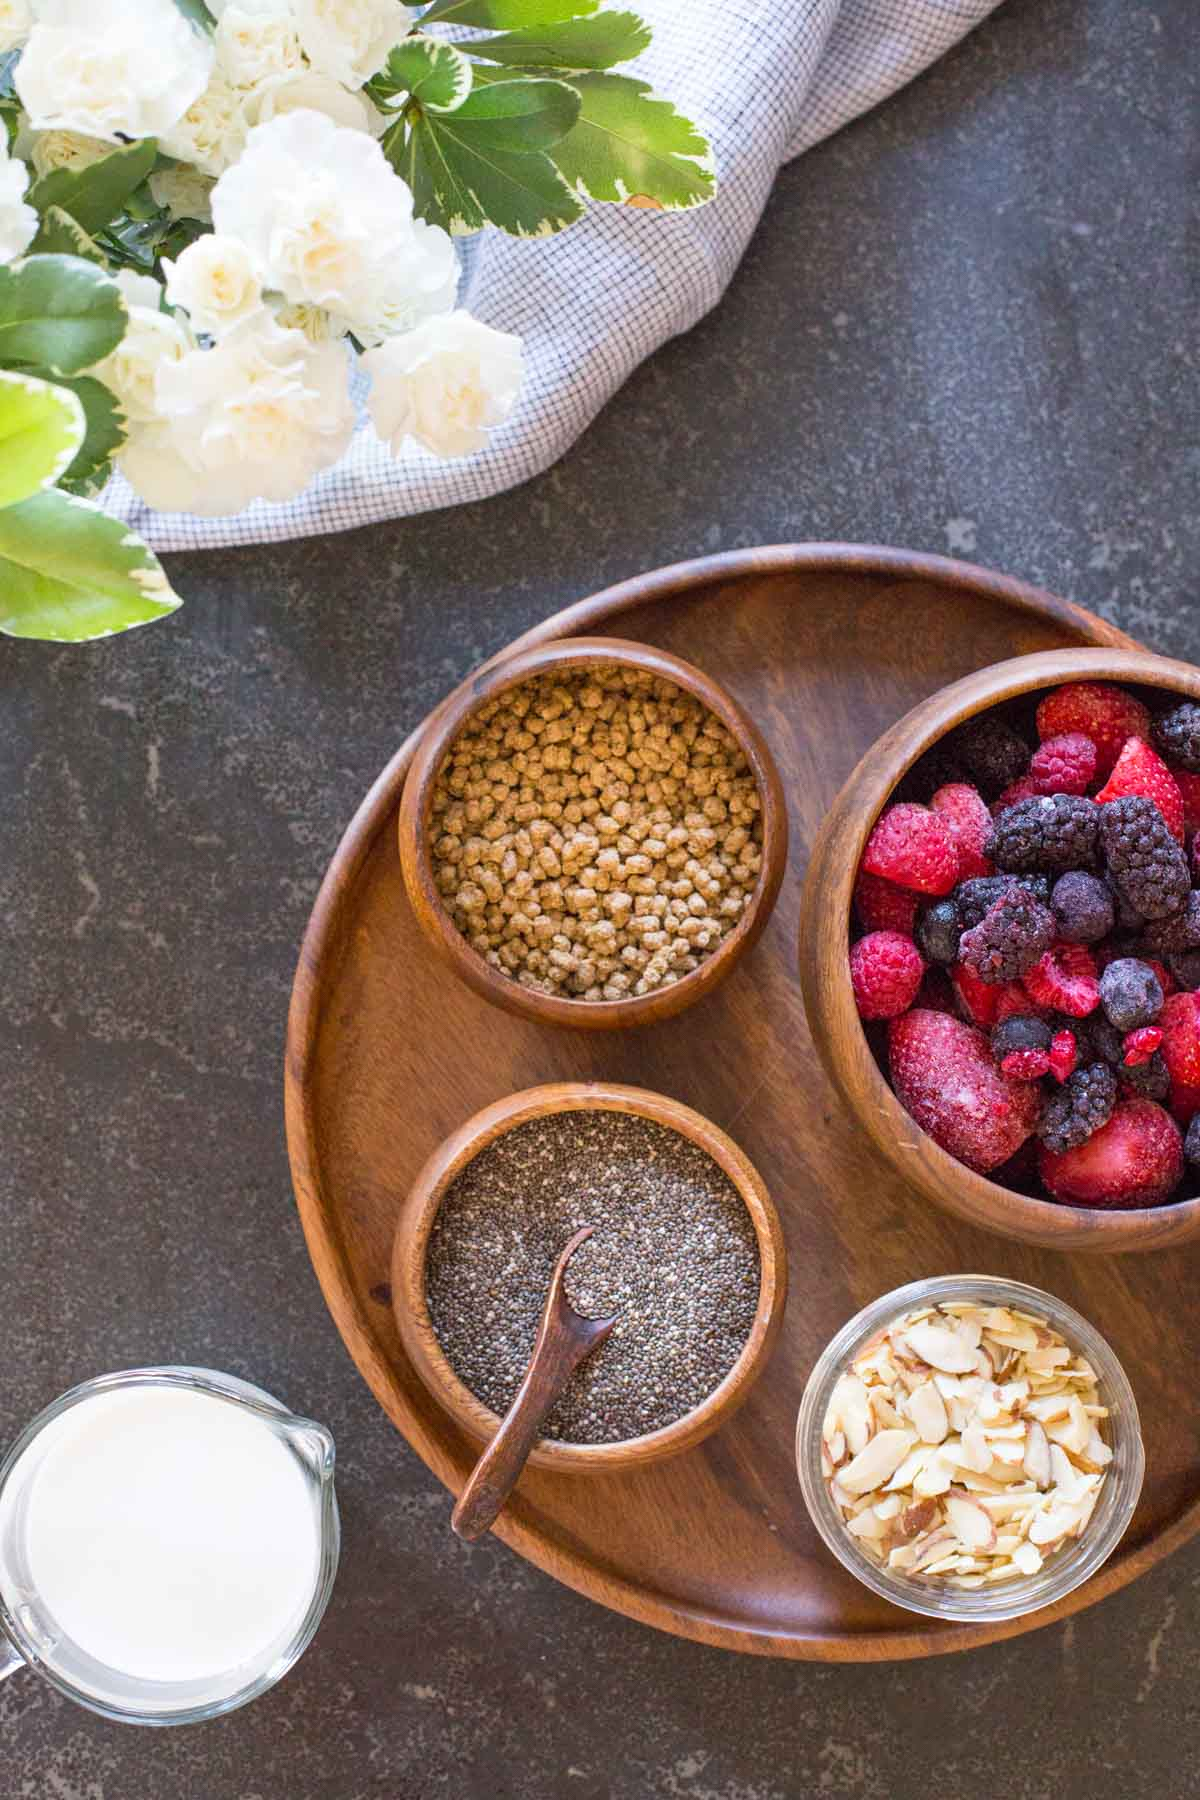 All the ingredients for the Chia Pudding Parfaits - A wood plate with a small wood bowl of bran nuggets, a small wood bowl of chia seeds, a small glass dish of sliced almonds, and a wood bowl of frozen mixed berries, sitting next to a small pour cup of milk.